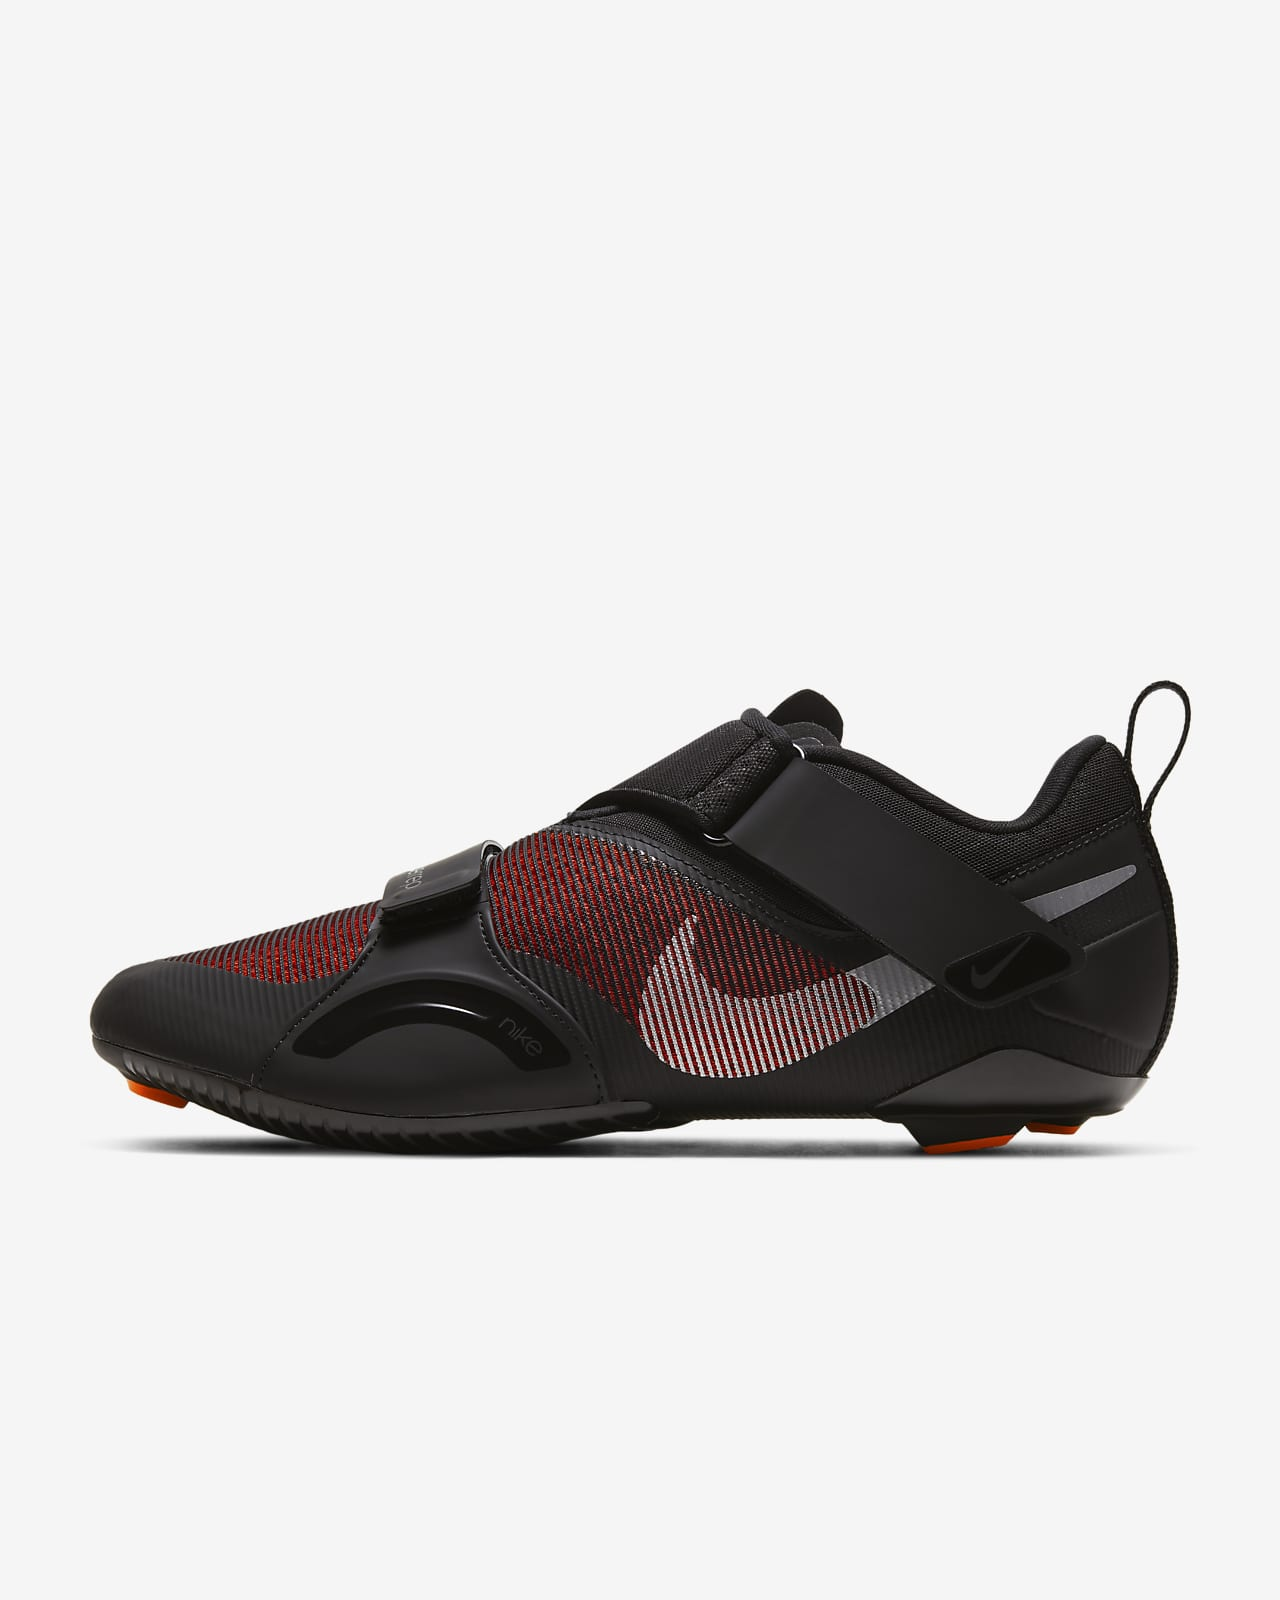 Nike SuperRep Cycle Men's Indoor Cycling Shoe